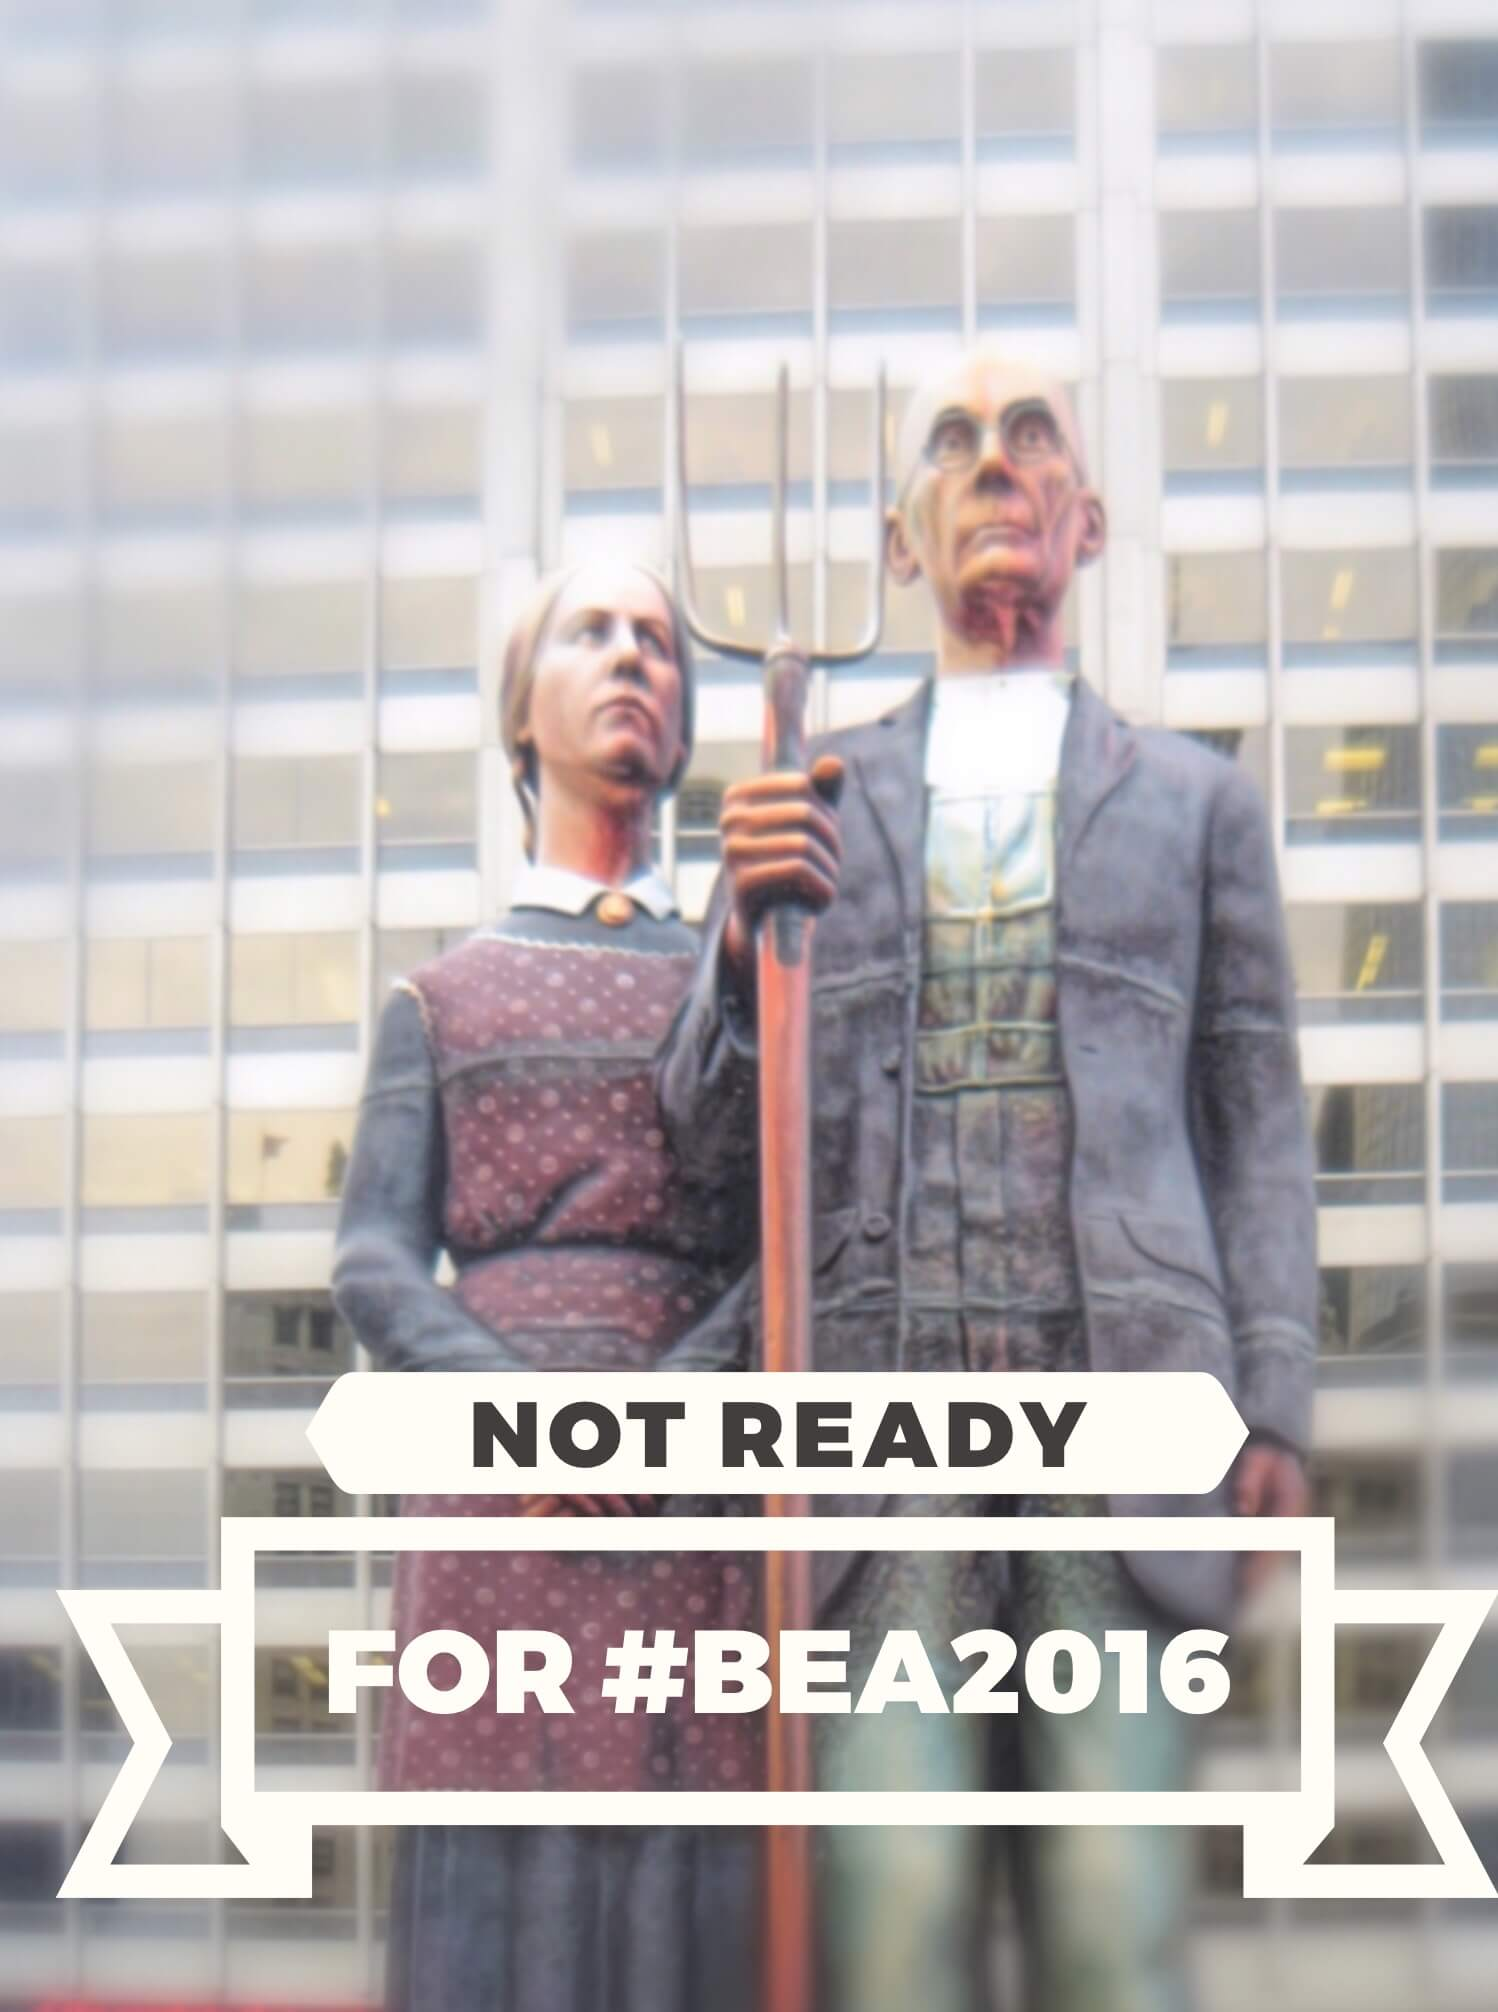 6 Reasons I'm Not Ready for #BEA2016